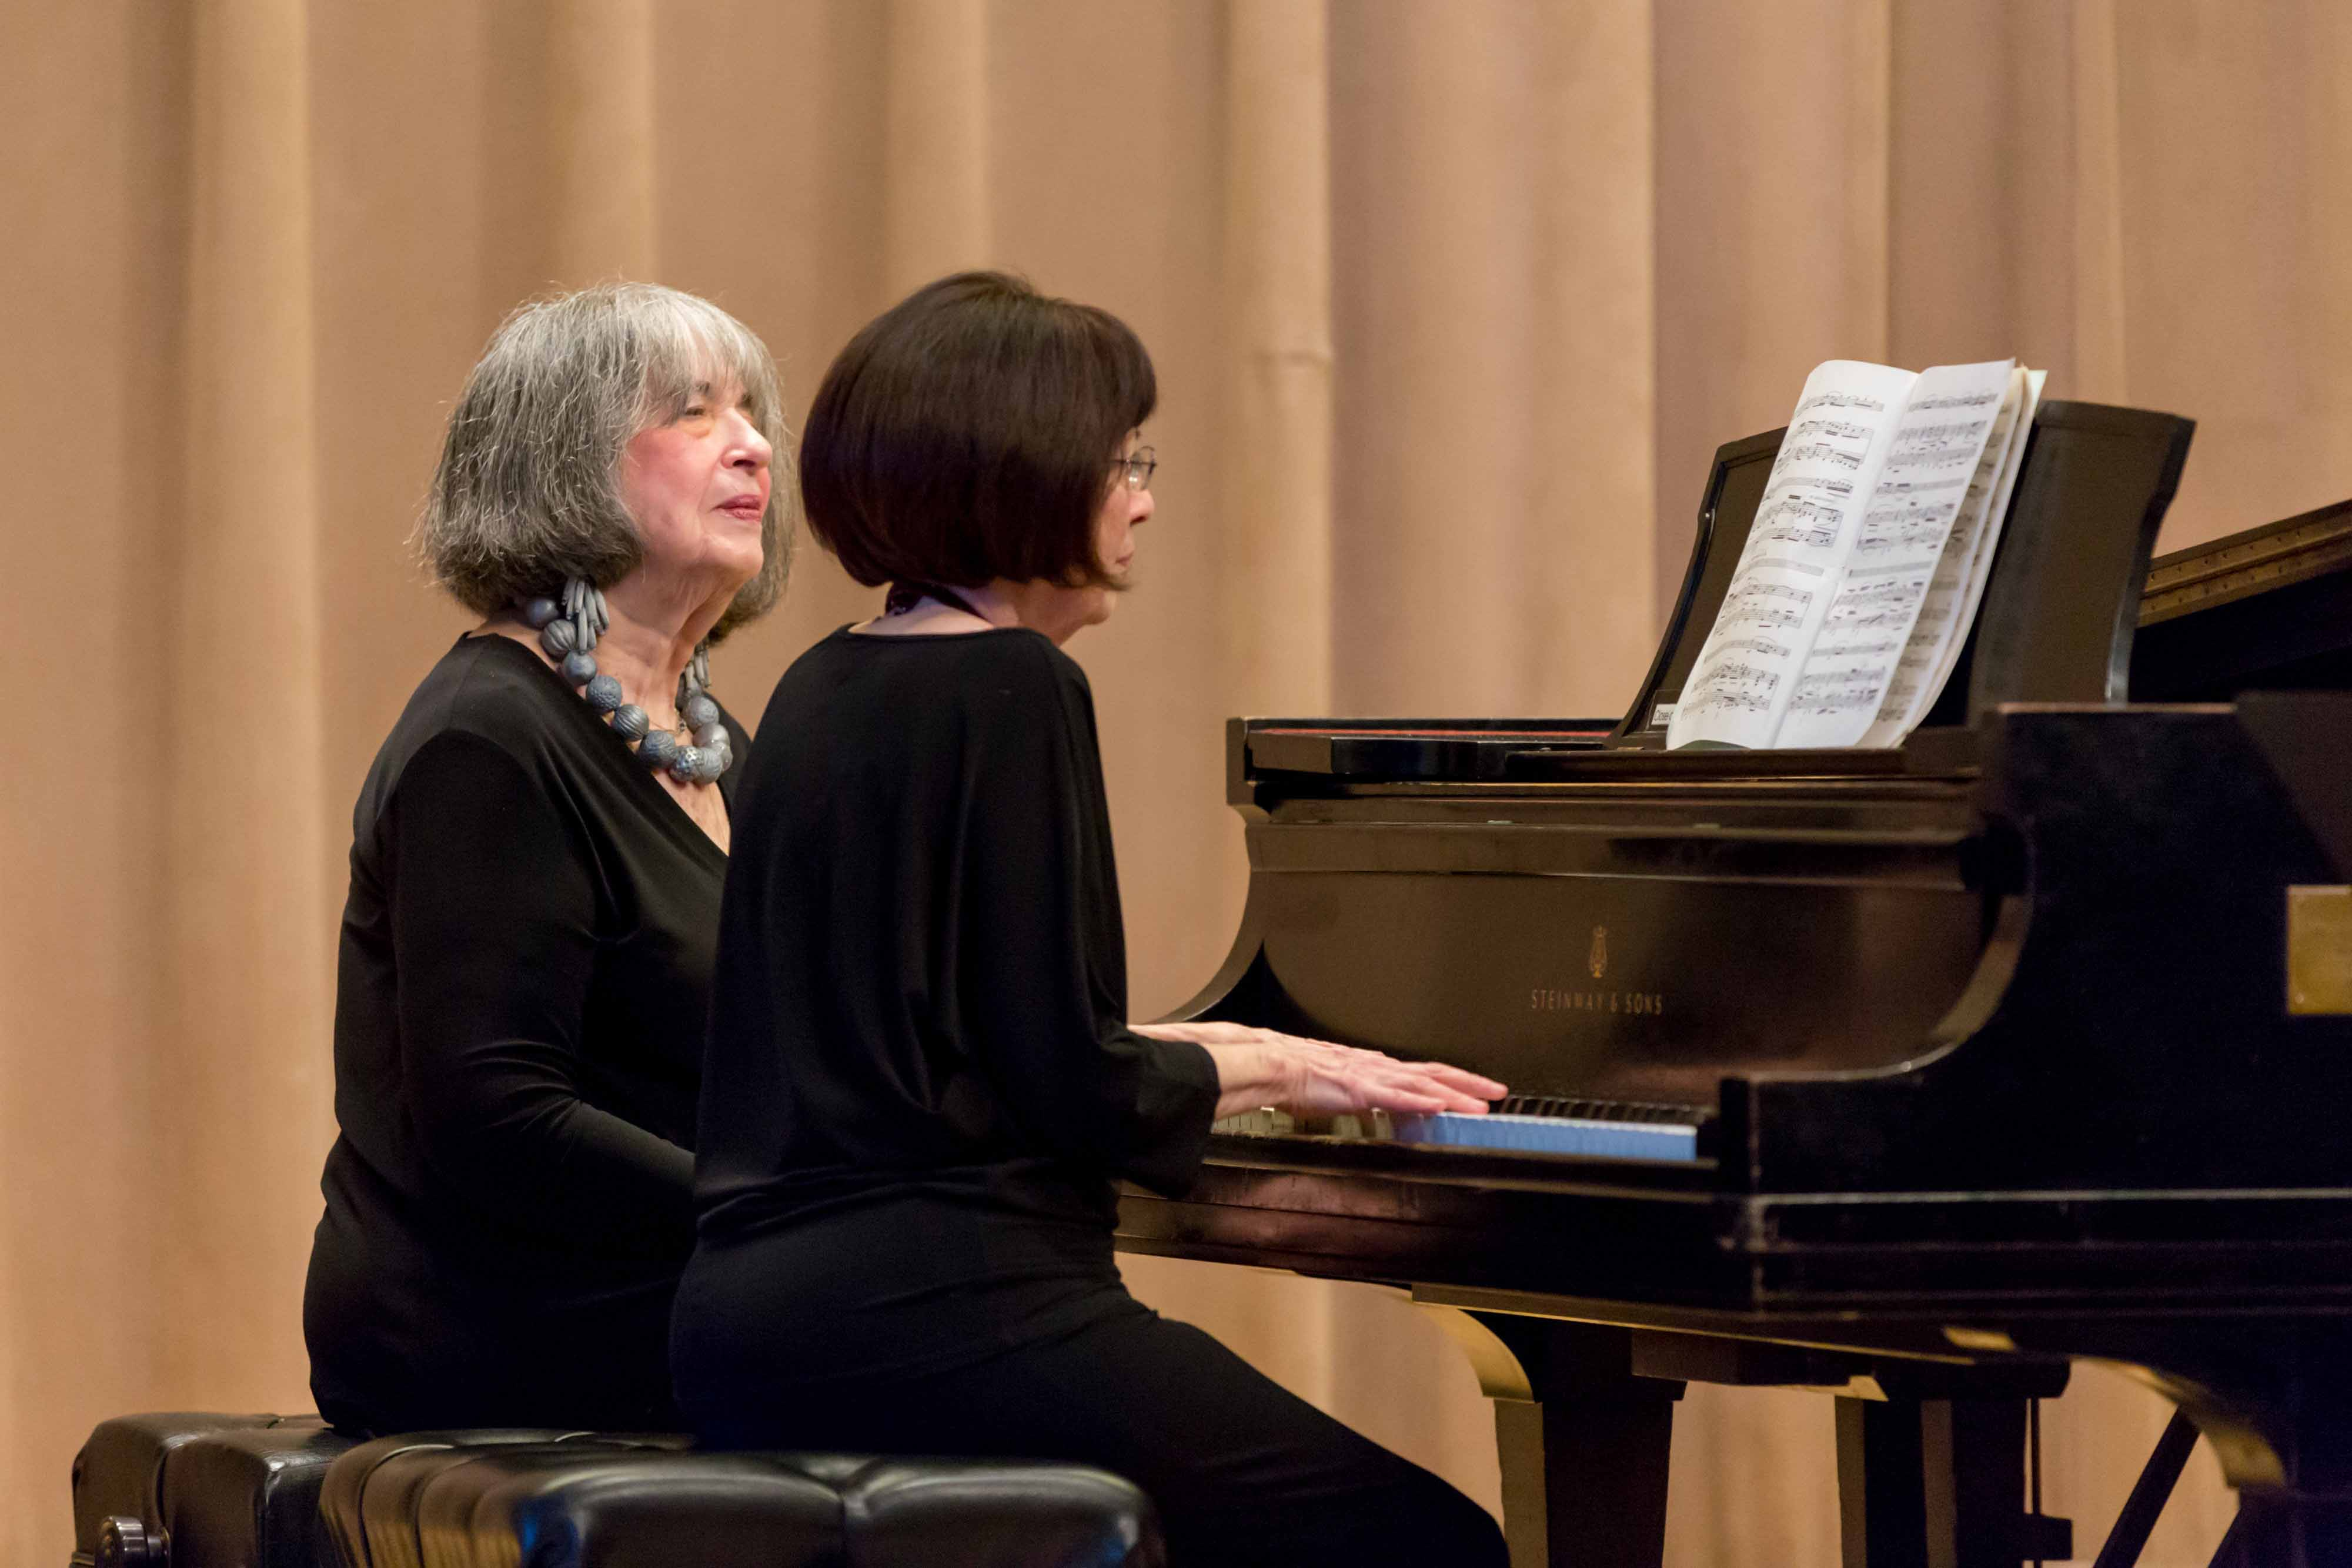 Leah Mellman and Libby Harwitz perform on stage